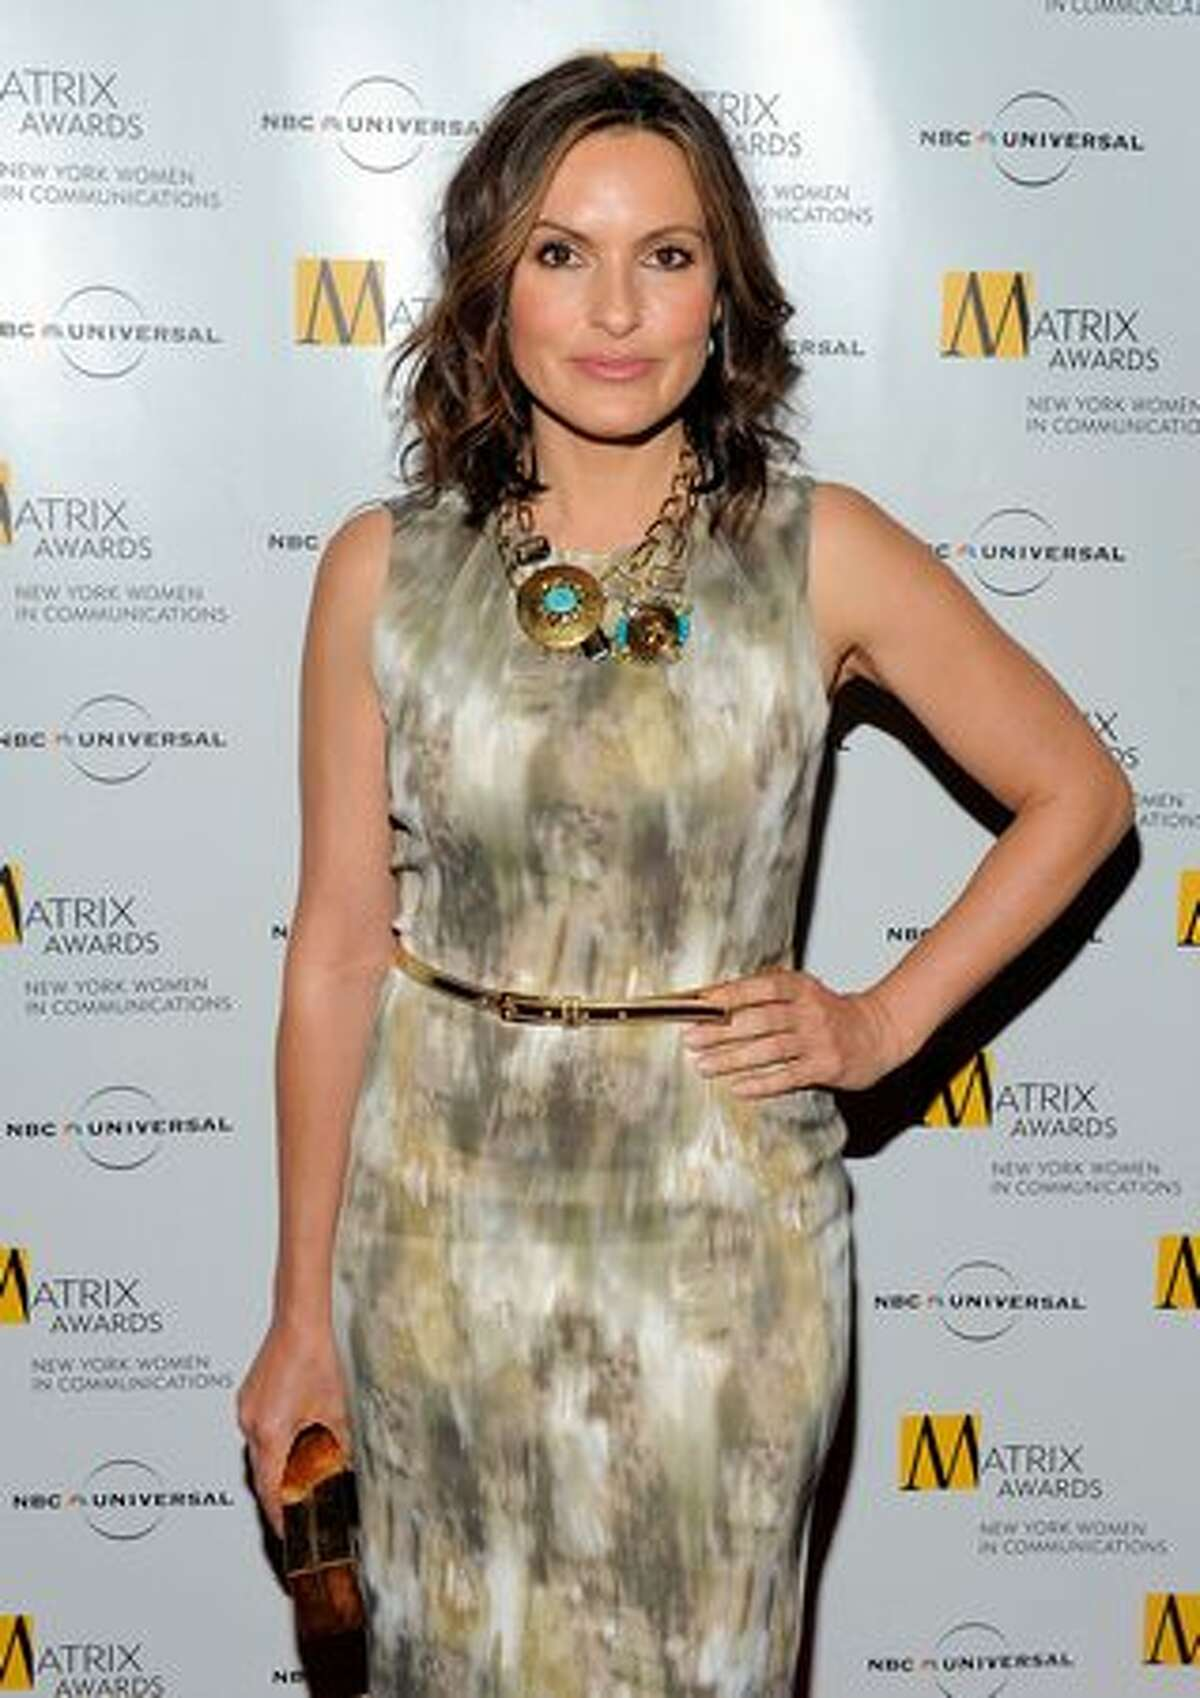 Actress Mariska Hargitay poses for photos at the 2010 Matrix Awards presented by New York Women in Communications at The Waldorf Astoria in New York City.